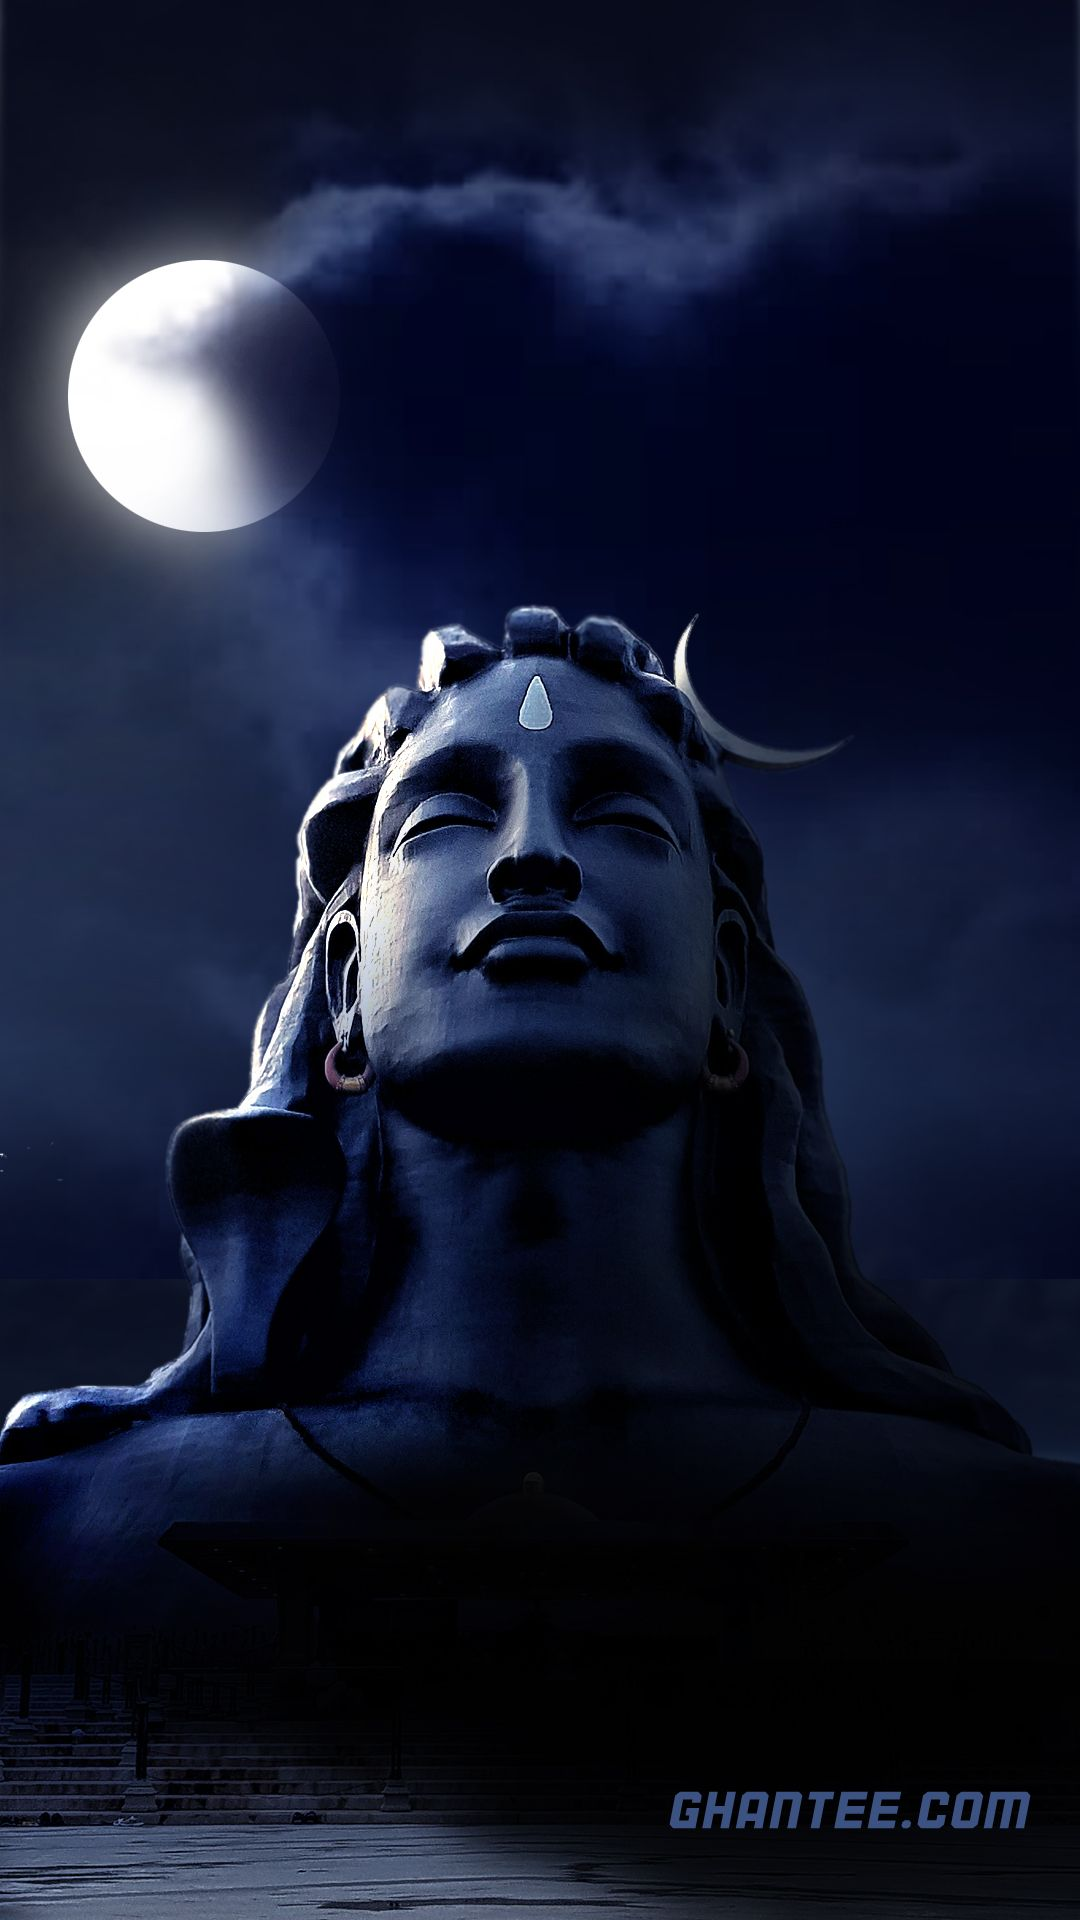 24 best lord shiva wallpapers for mobile devices Shiva 1080x1920